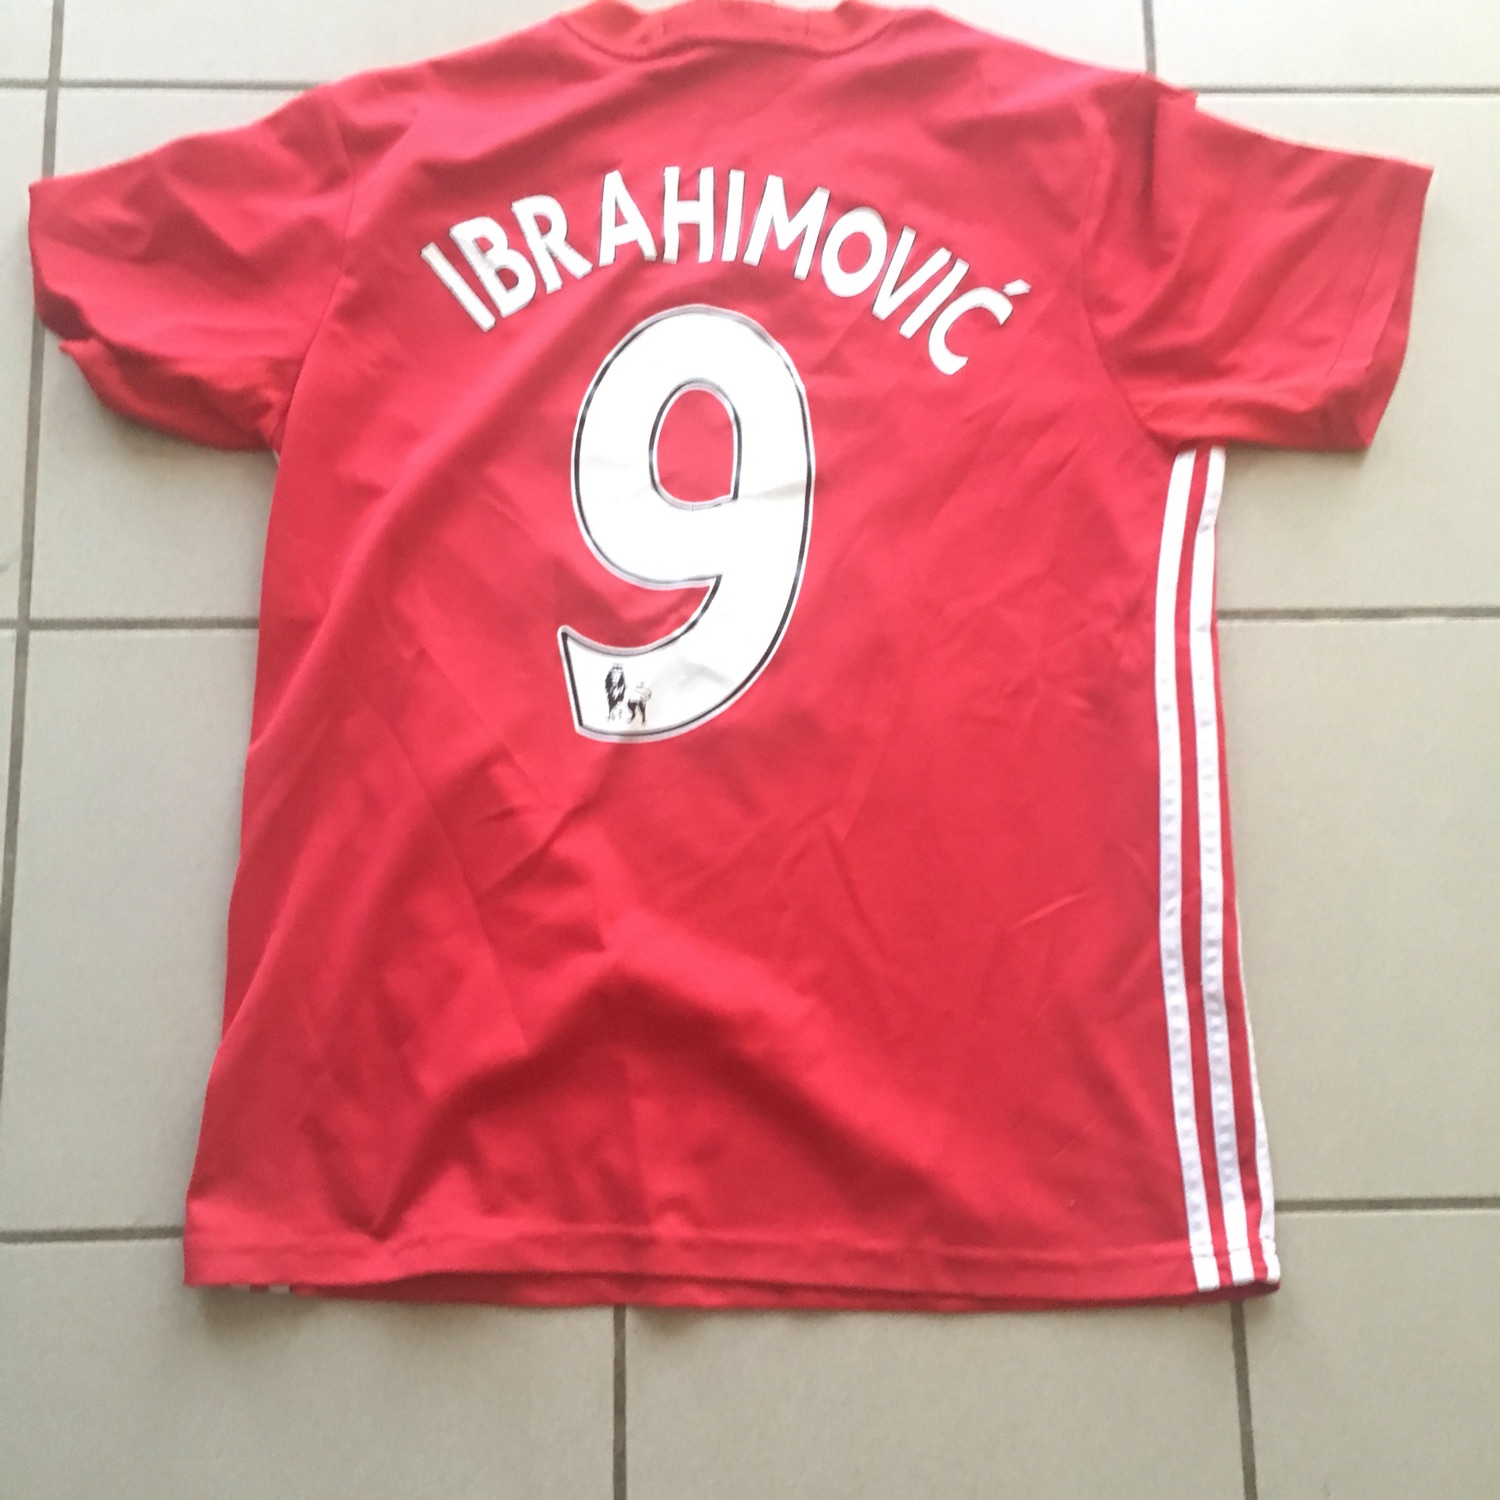 quality design 30a88 4a67d Zlatan Ibrahimovic Manchester United Jersey